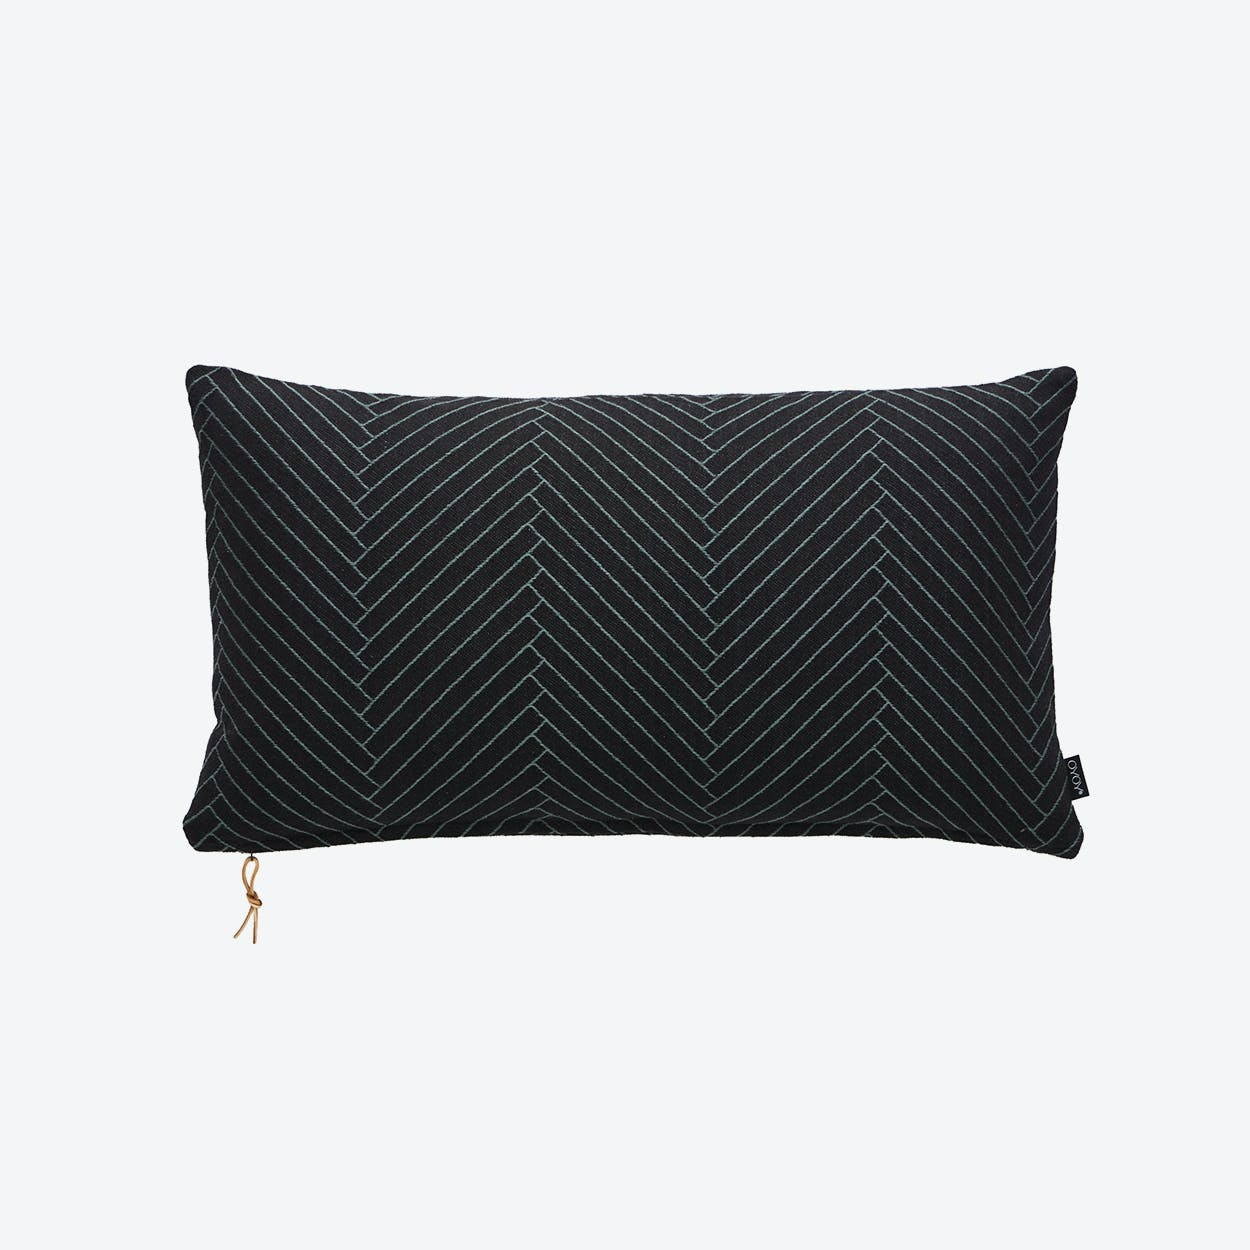 Fluffy Herringbone in Black 40X70Cm